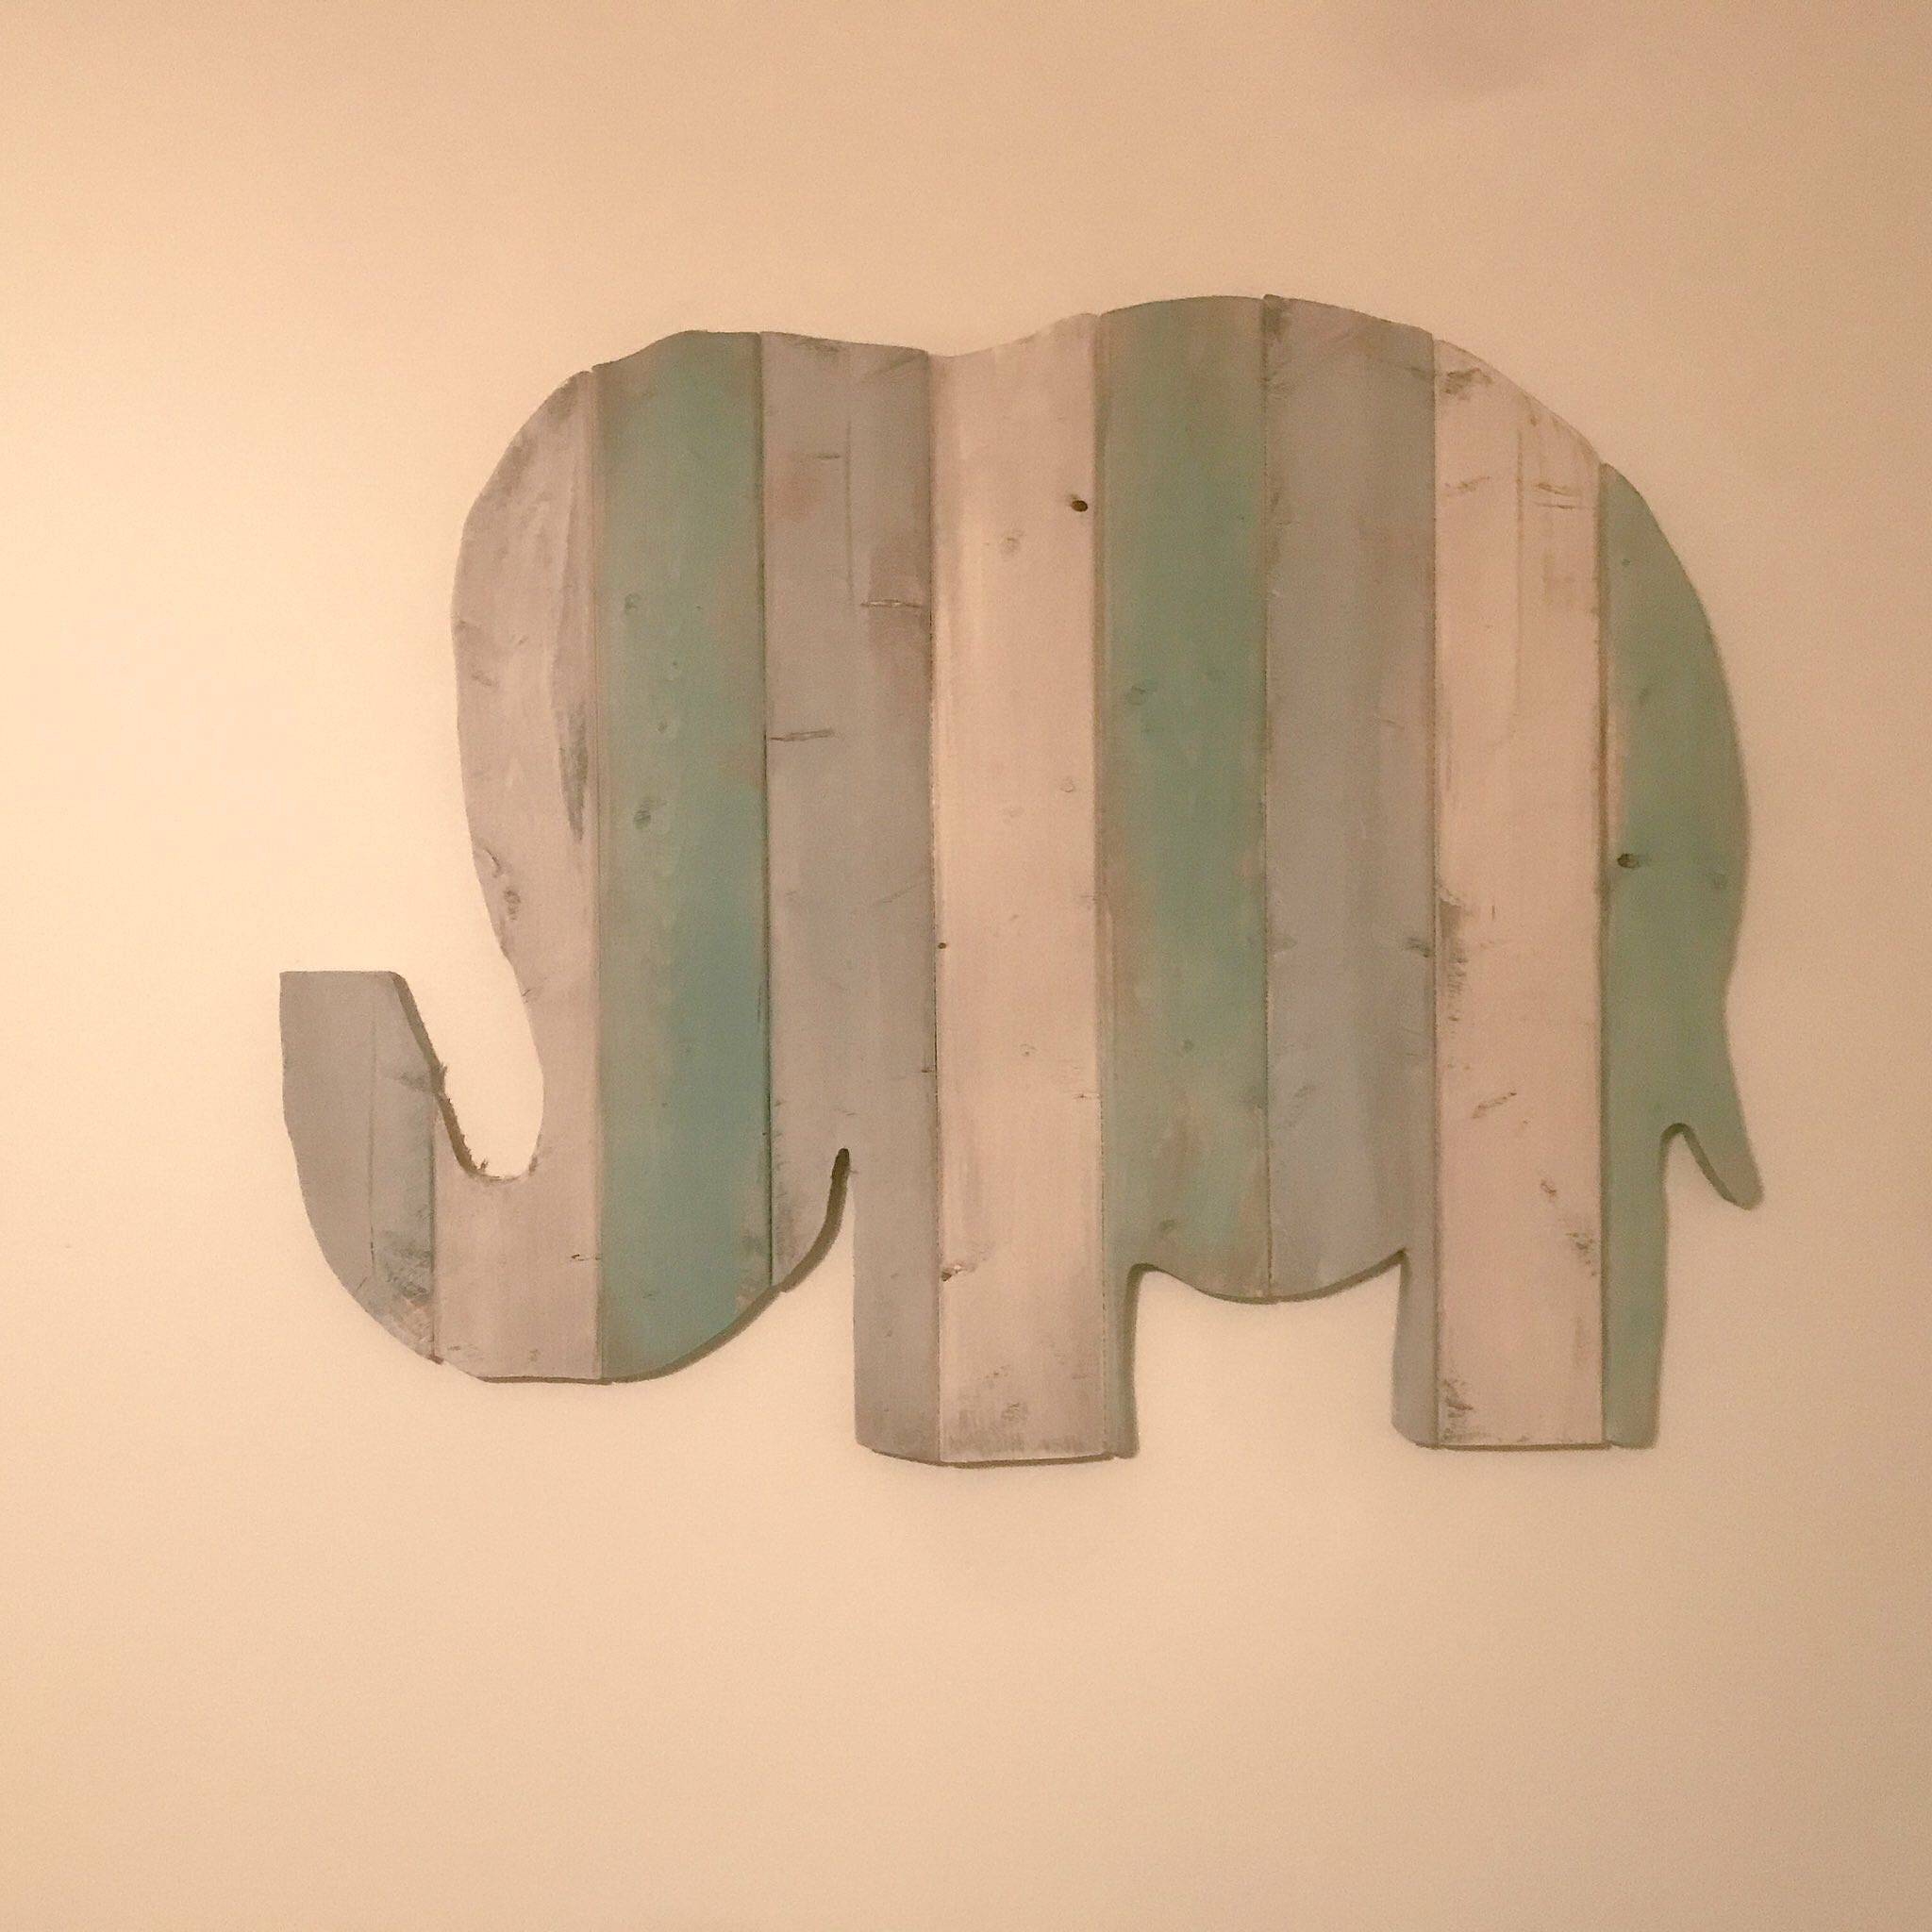 Large Wooden Rustic Elephant Distressed Sign Nursery Wall Decor Or